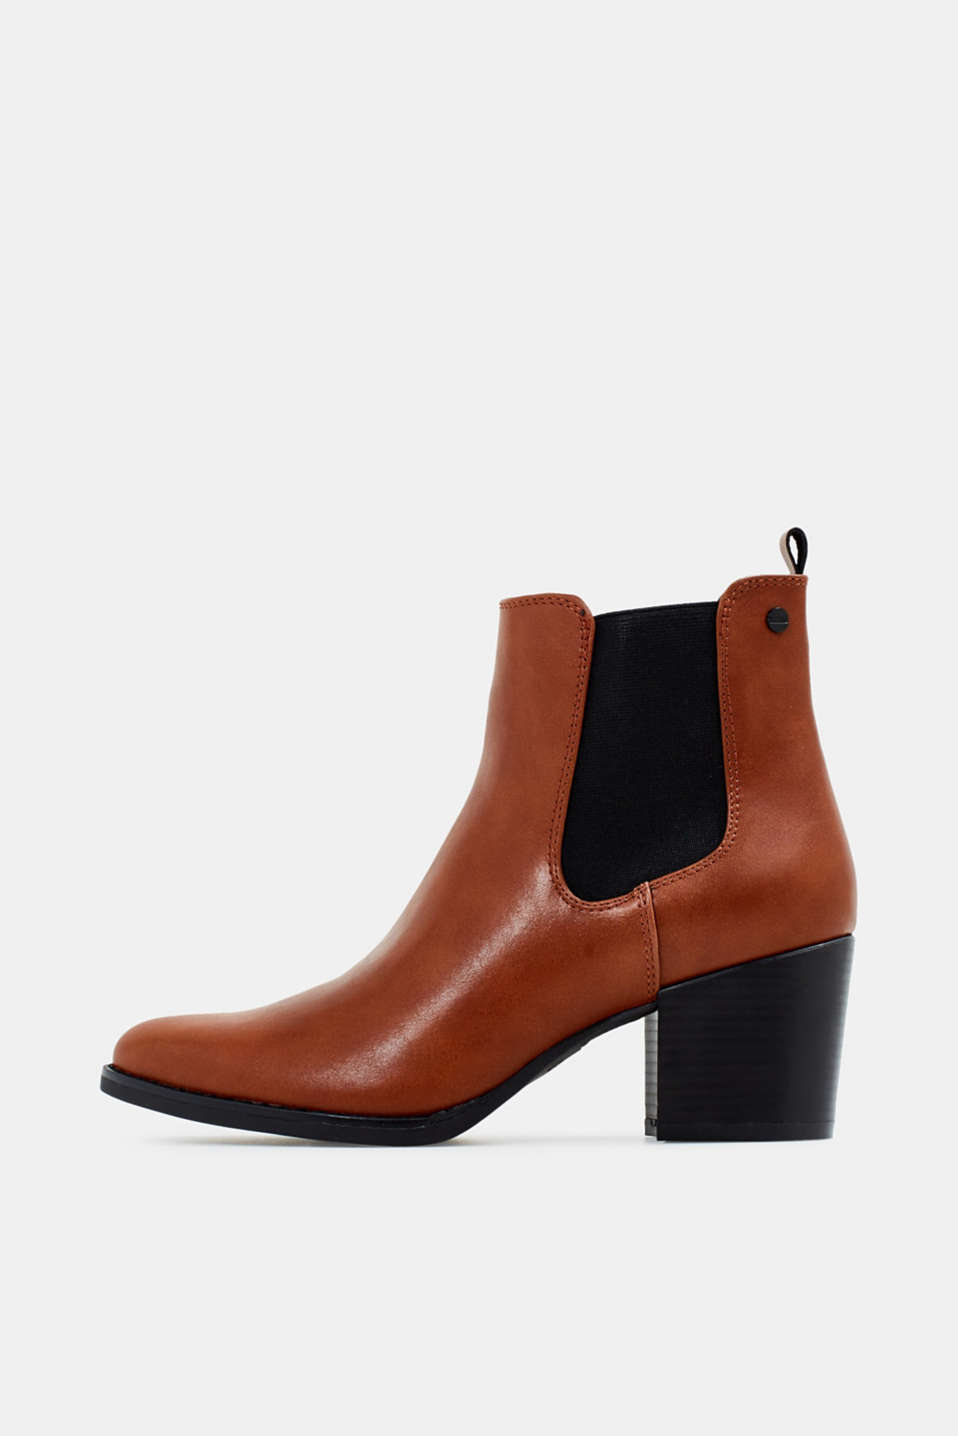 Heeled Chelsea boots, TOFFEE, detail image number 0